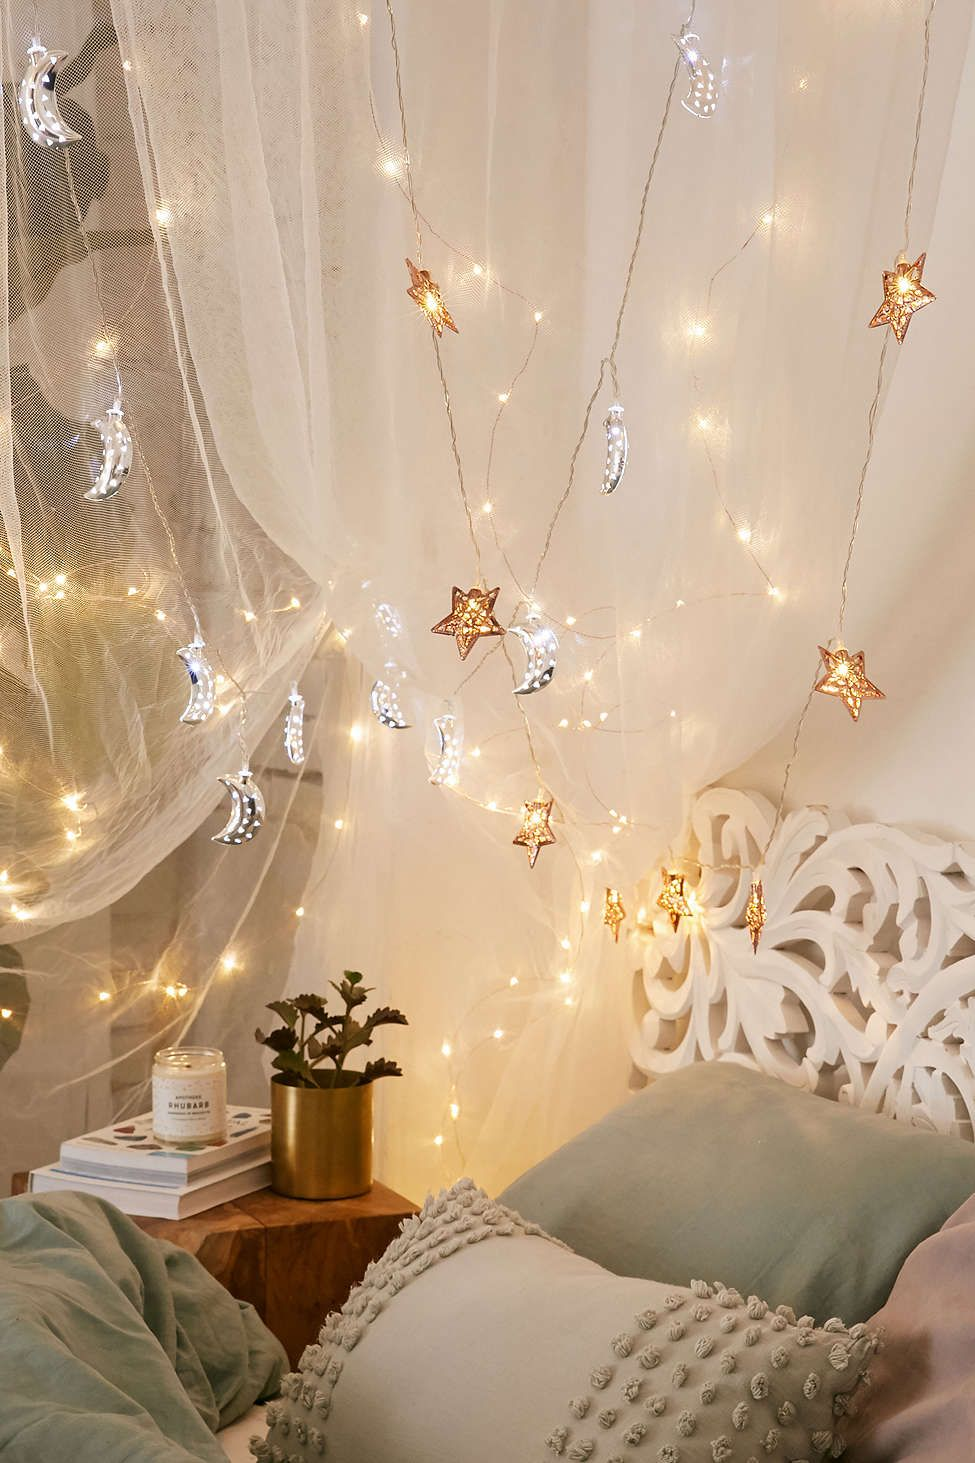 How To Hang String Lights From Ceiling Delectable Copper Star String Lights  Pinterest  Star String Lights Urban Decorating Design